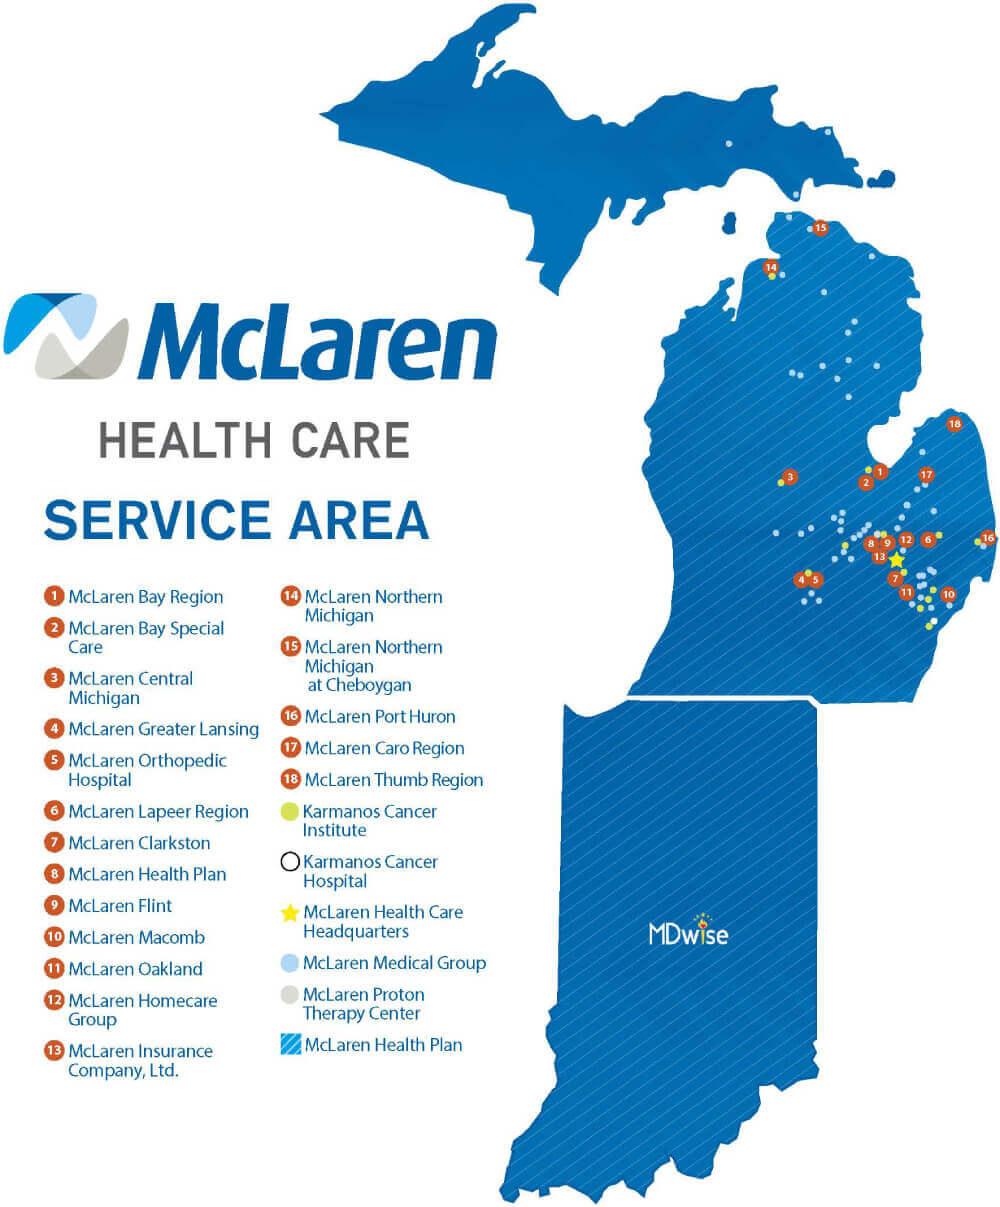 About McLaren Health Care